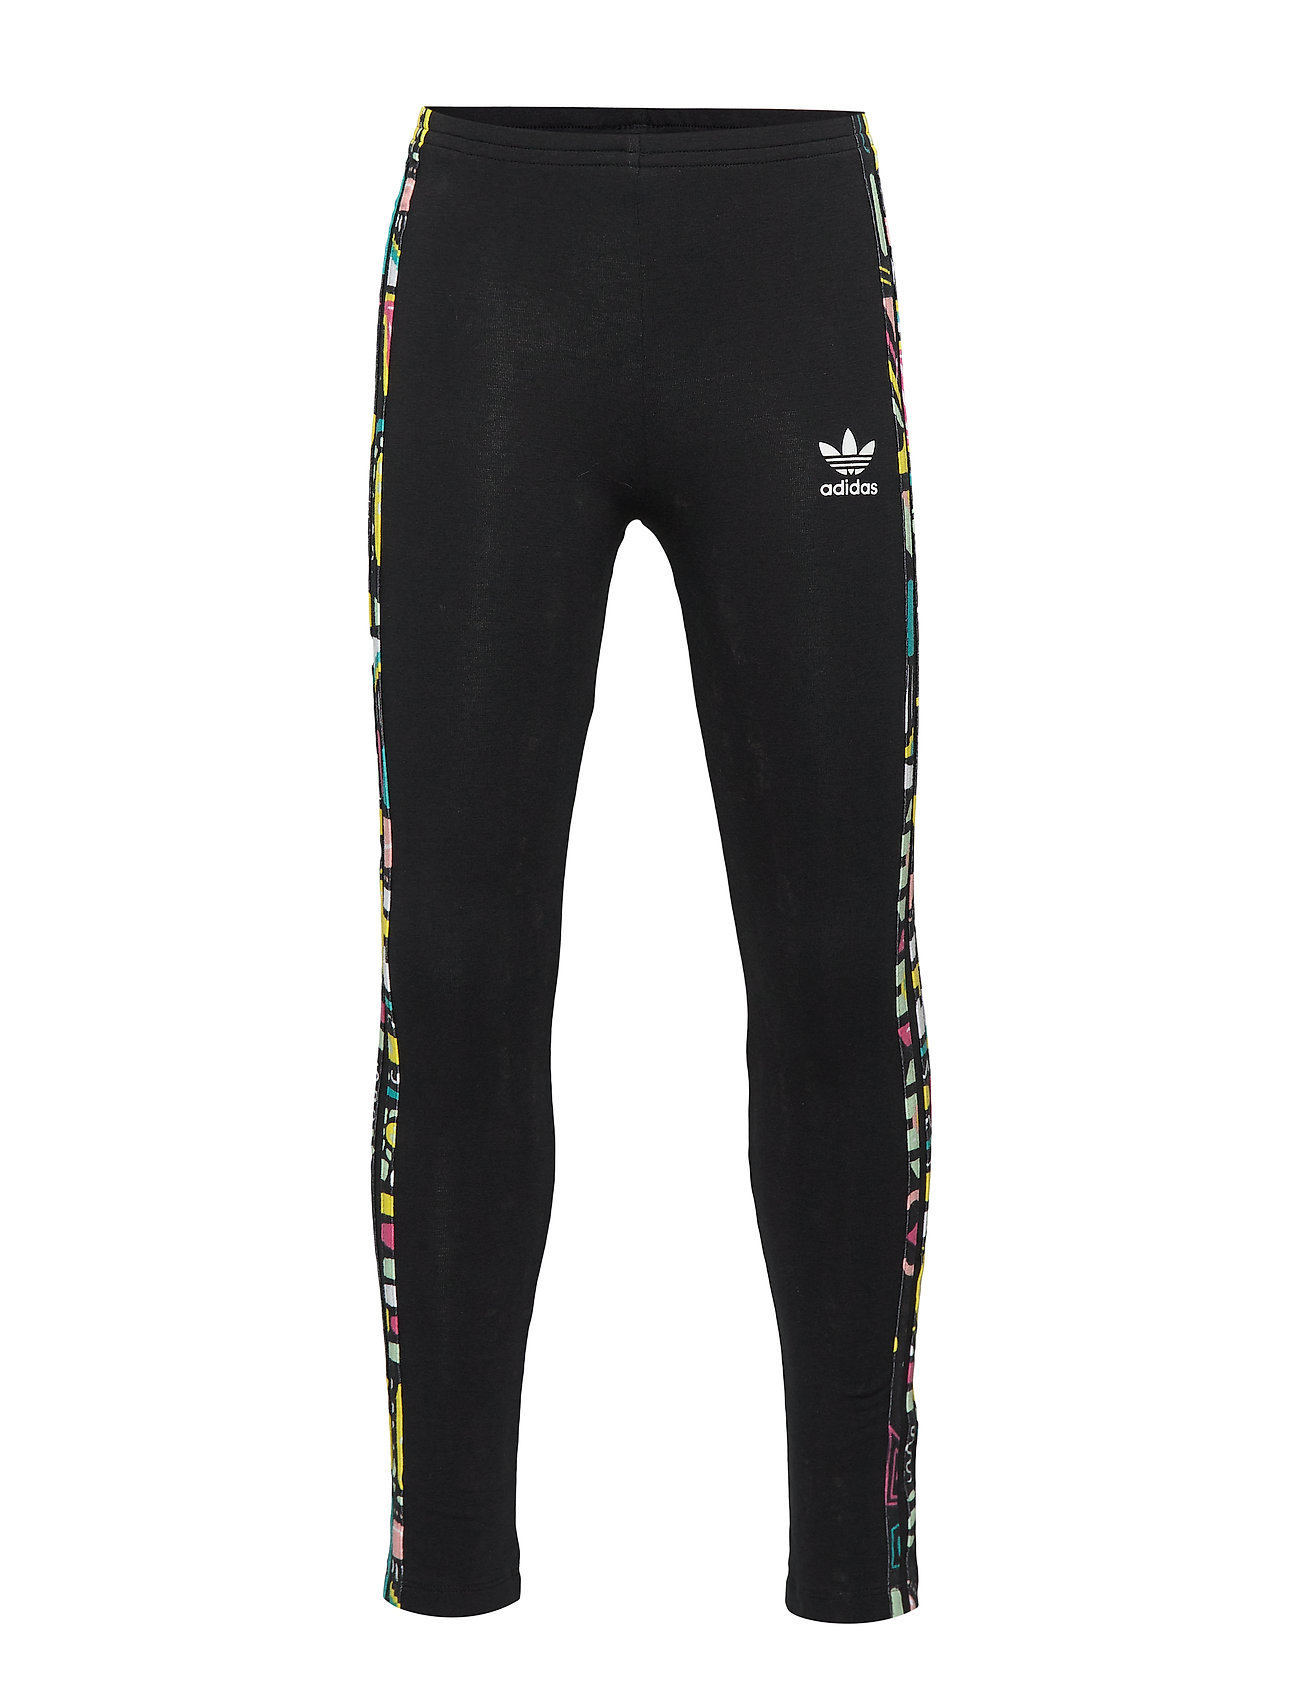 adidas Originals LEGGINGS SOLID - BLACK/MULTCO